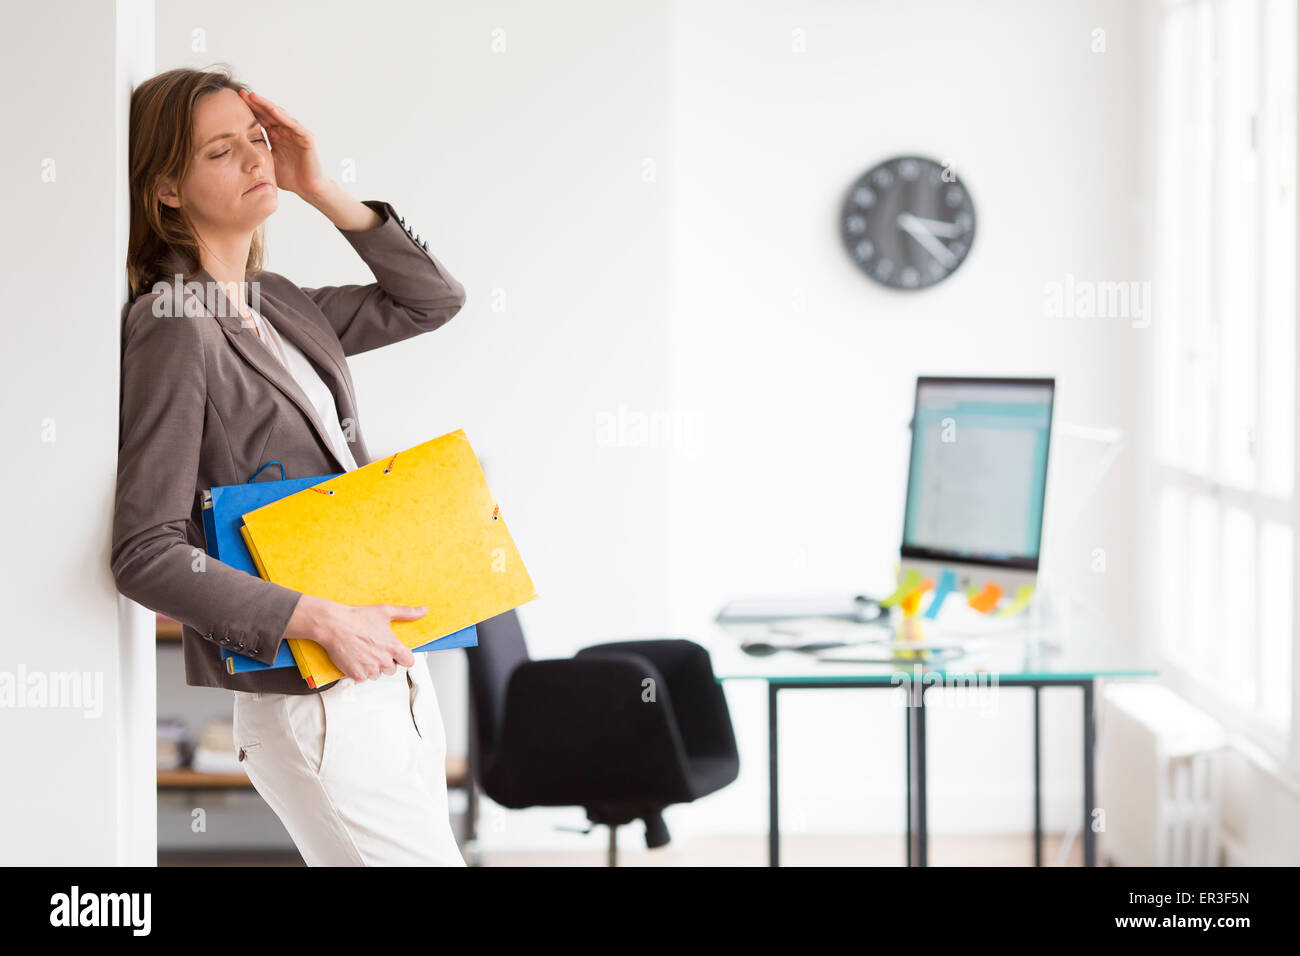 Woman at work suffering from headache. - Stock Image